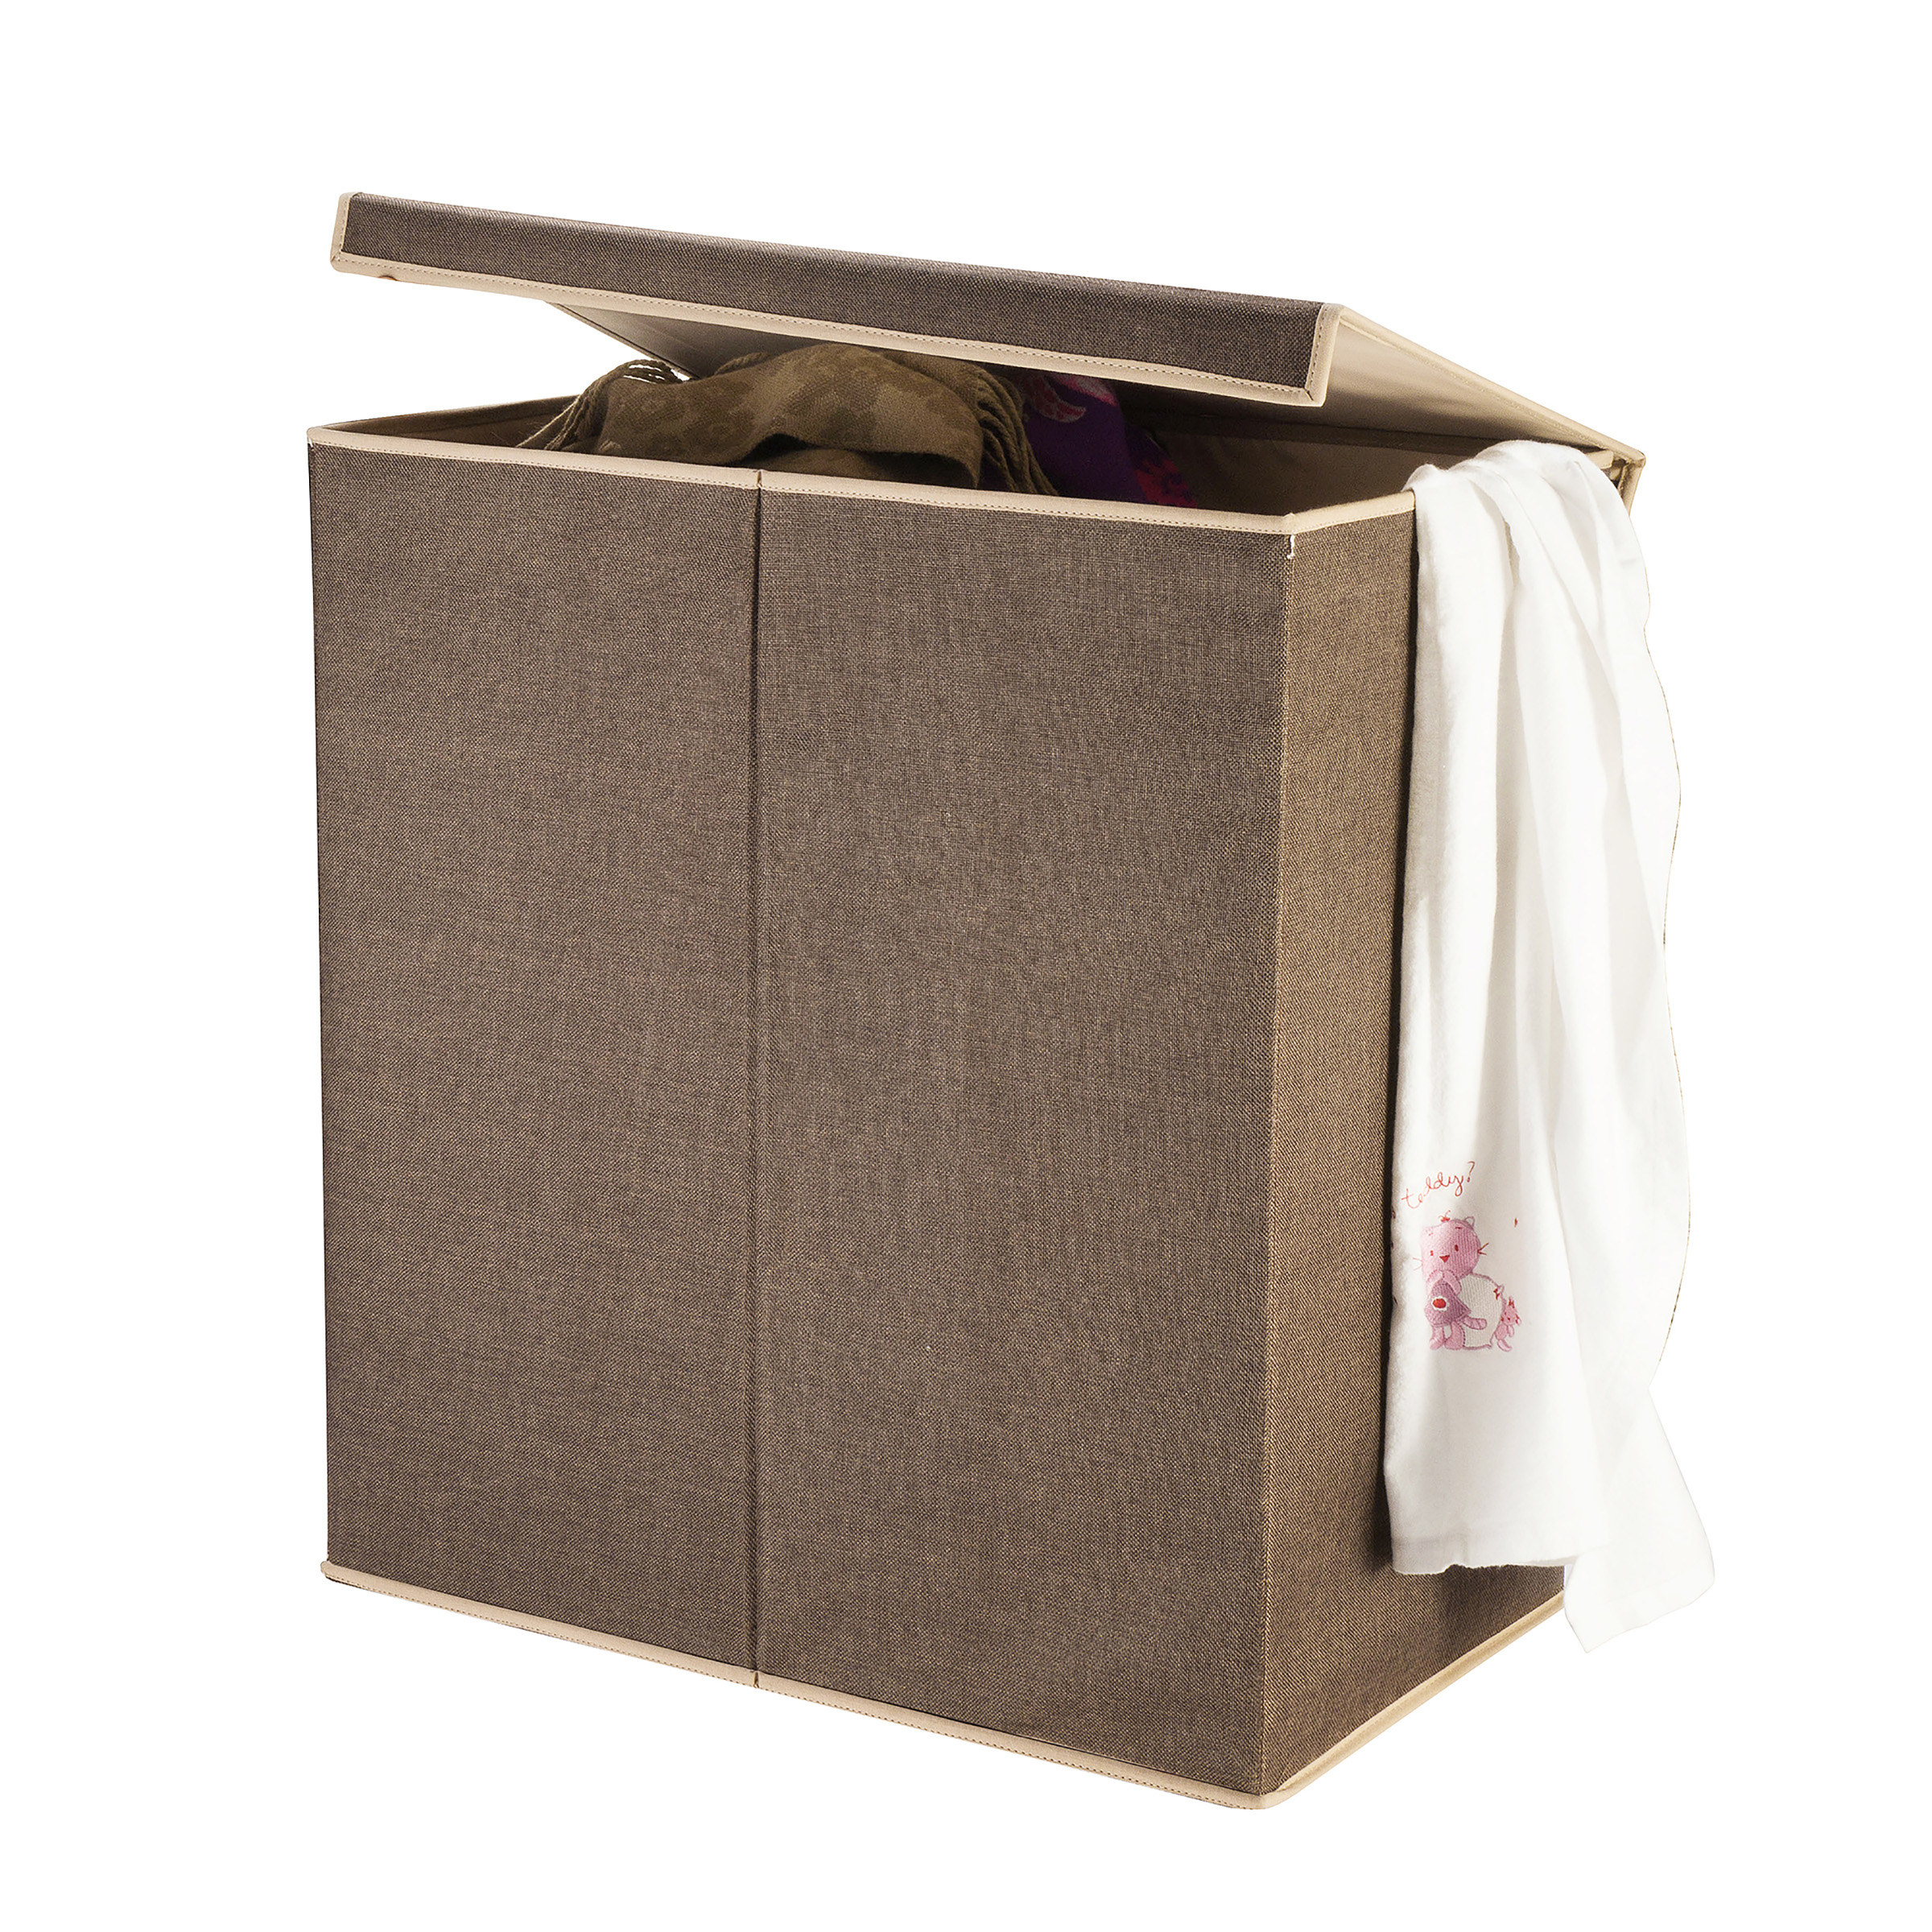 The two-compartment brown laundry hamper